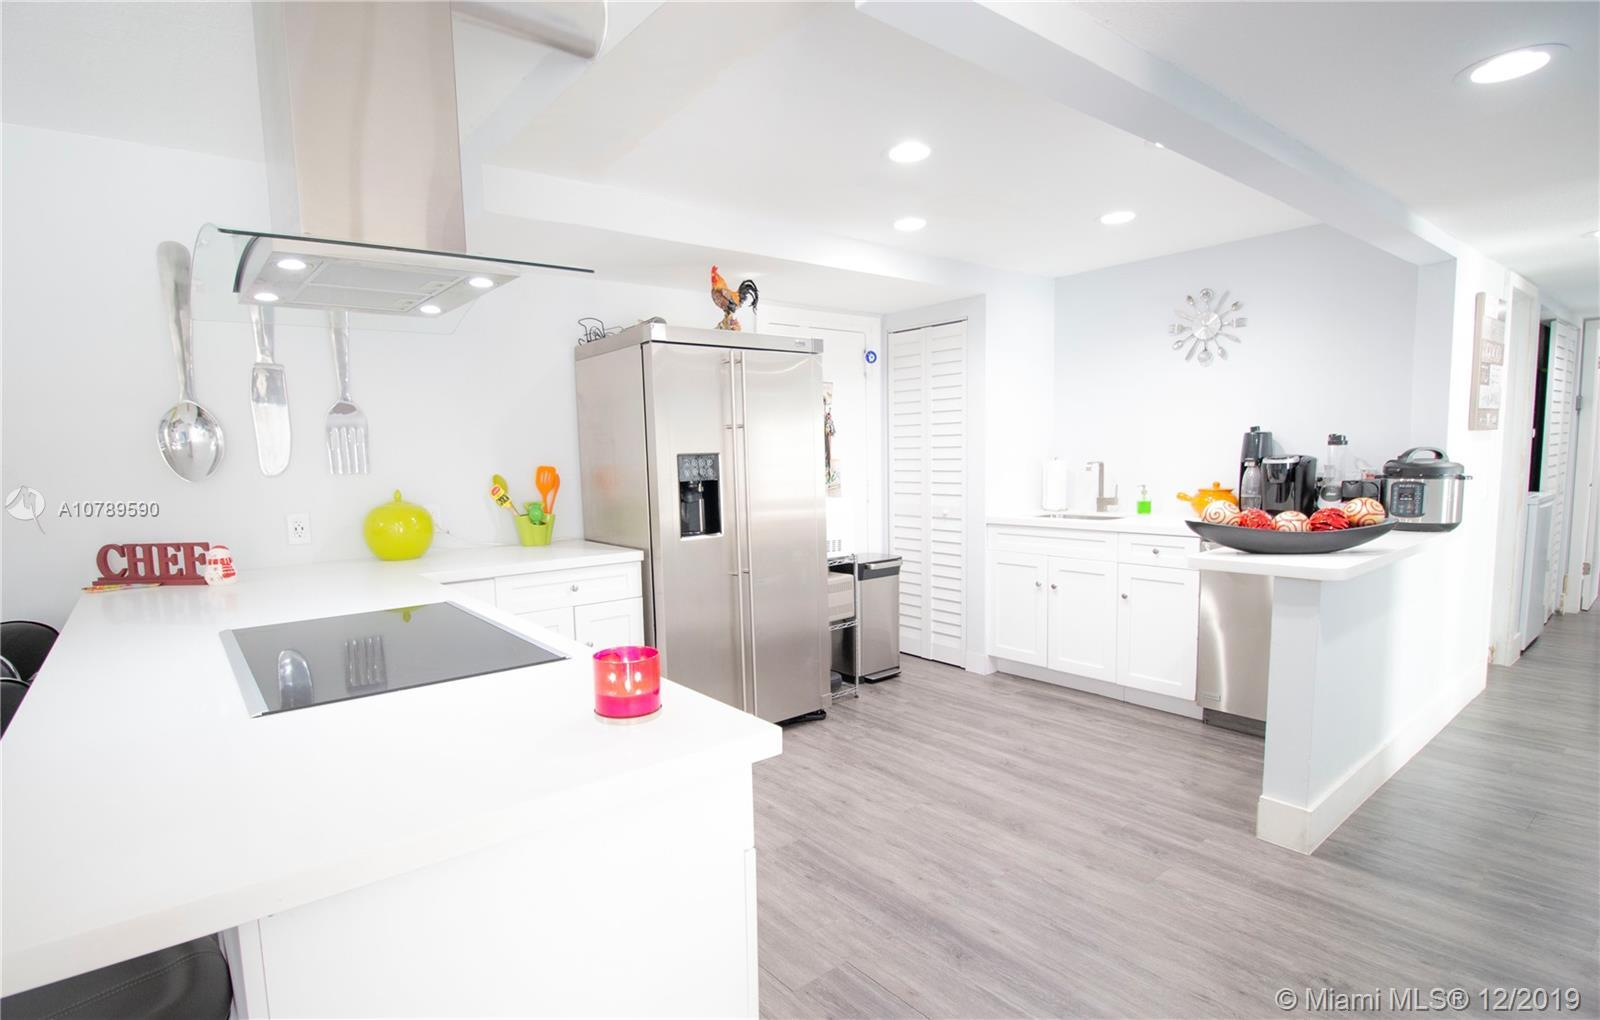 Your buyers will fall in love when they see this beautiful and modern 3 bedrooms 2 baths condo! Prop